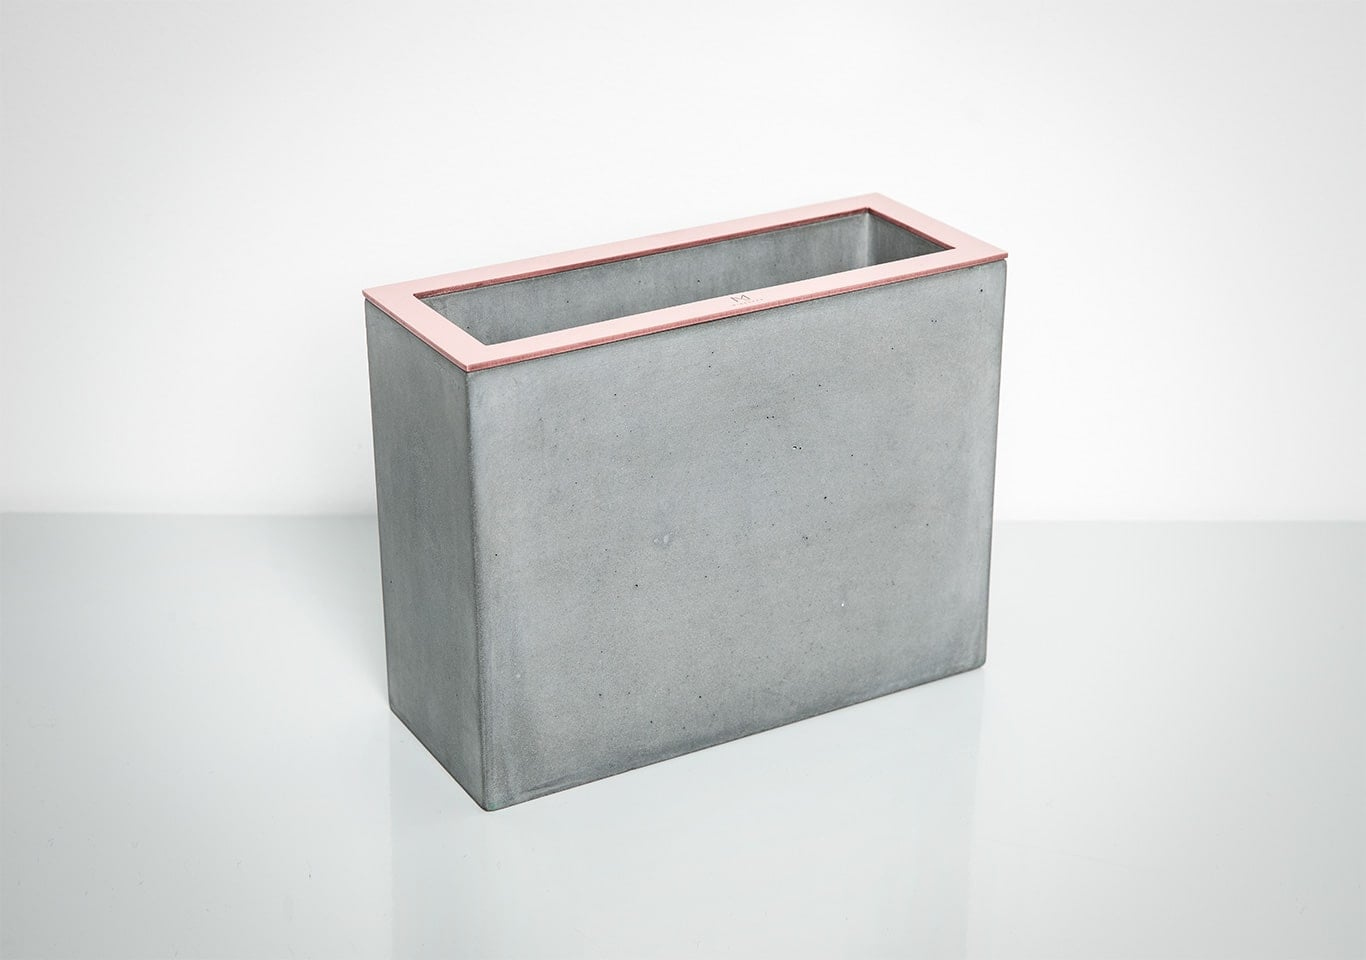 Gray Rectangular Concrete Vase by Minshape — MV2.1